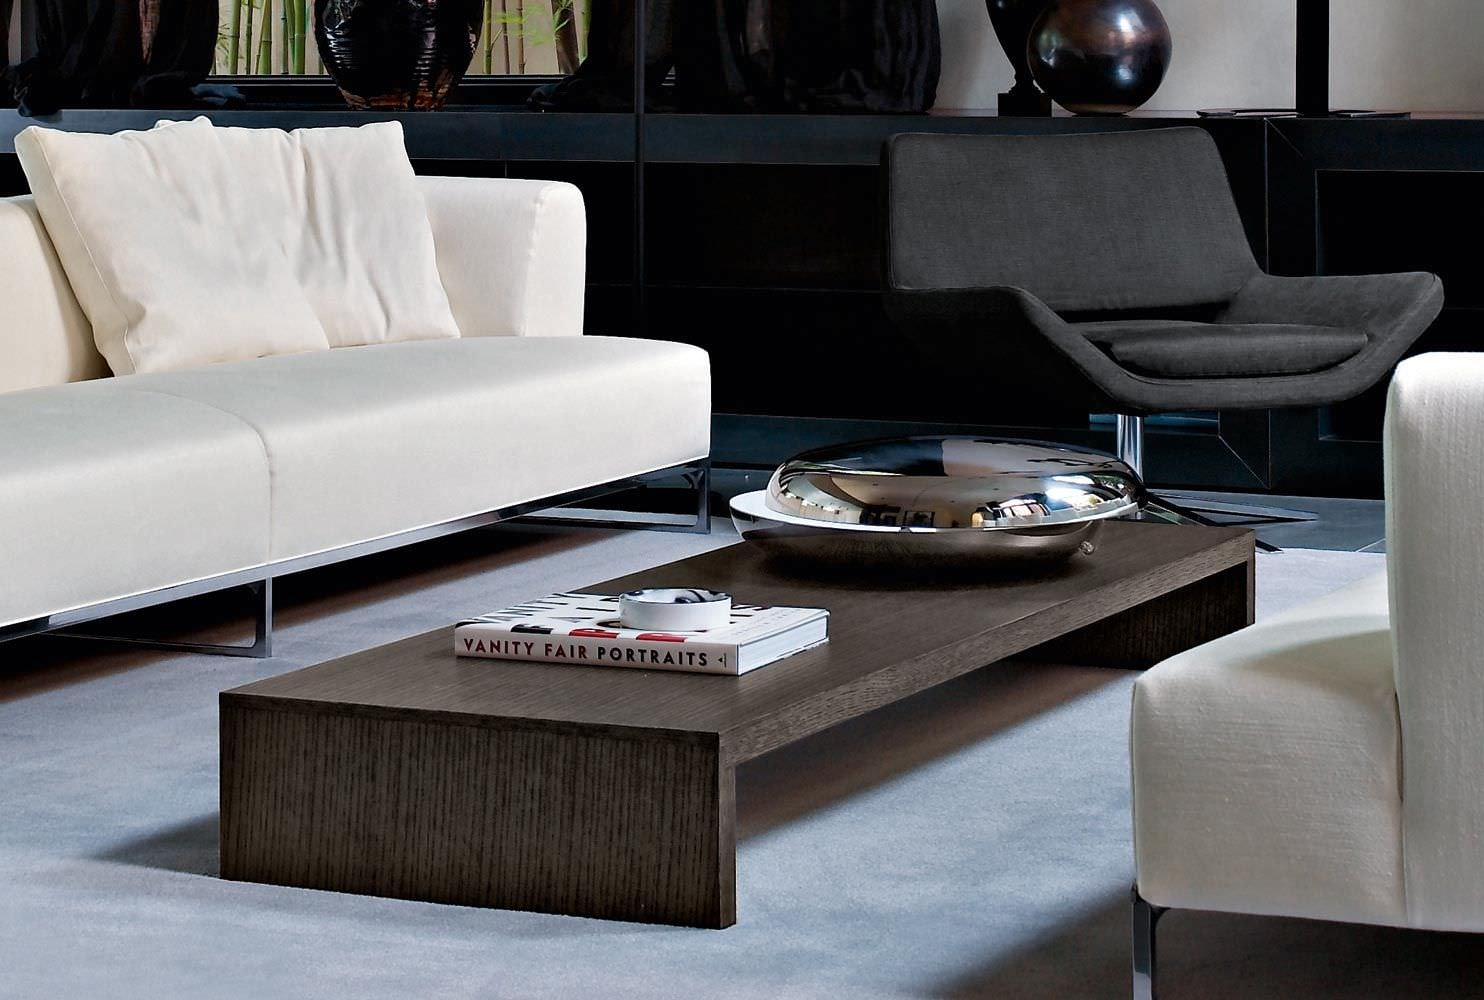 Walmart Coffee Table For Best Companion In The Living Room